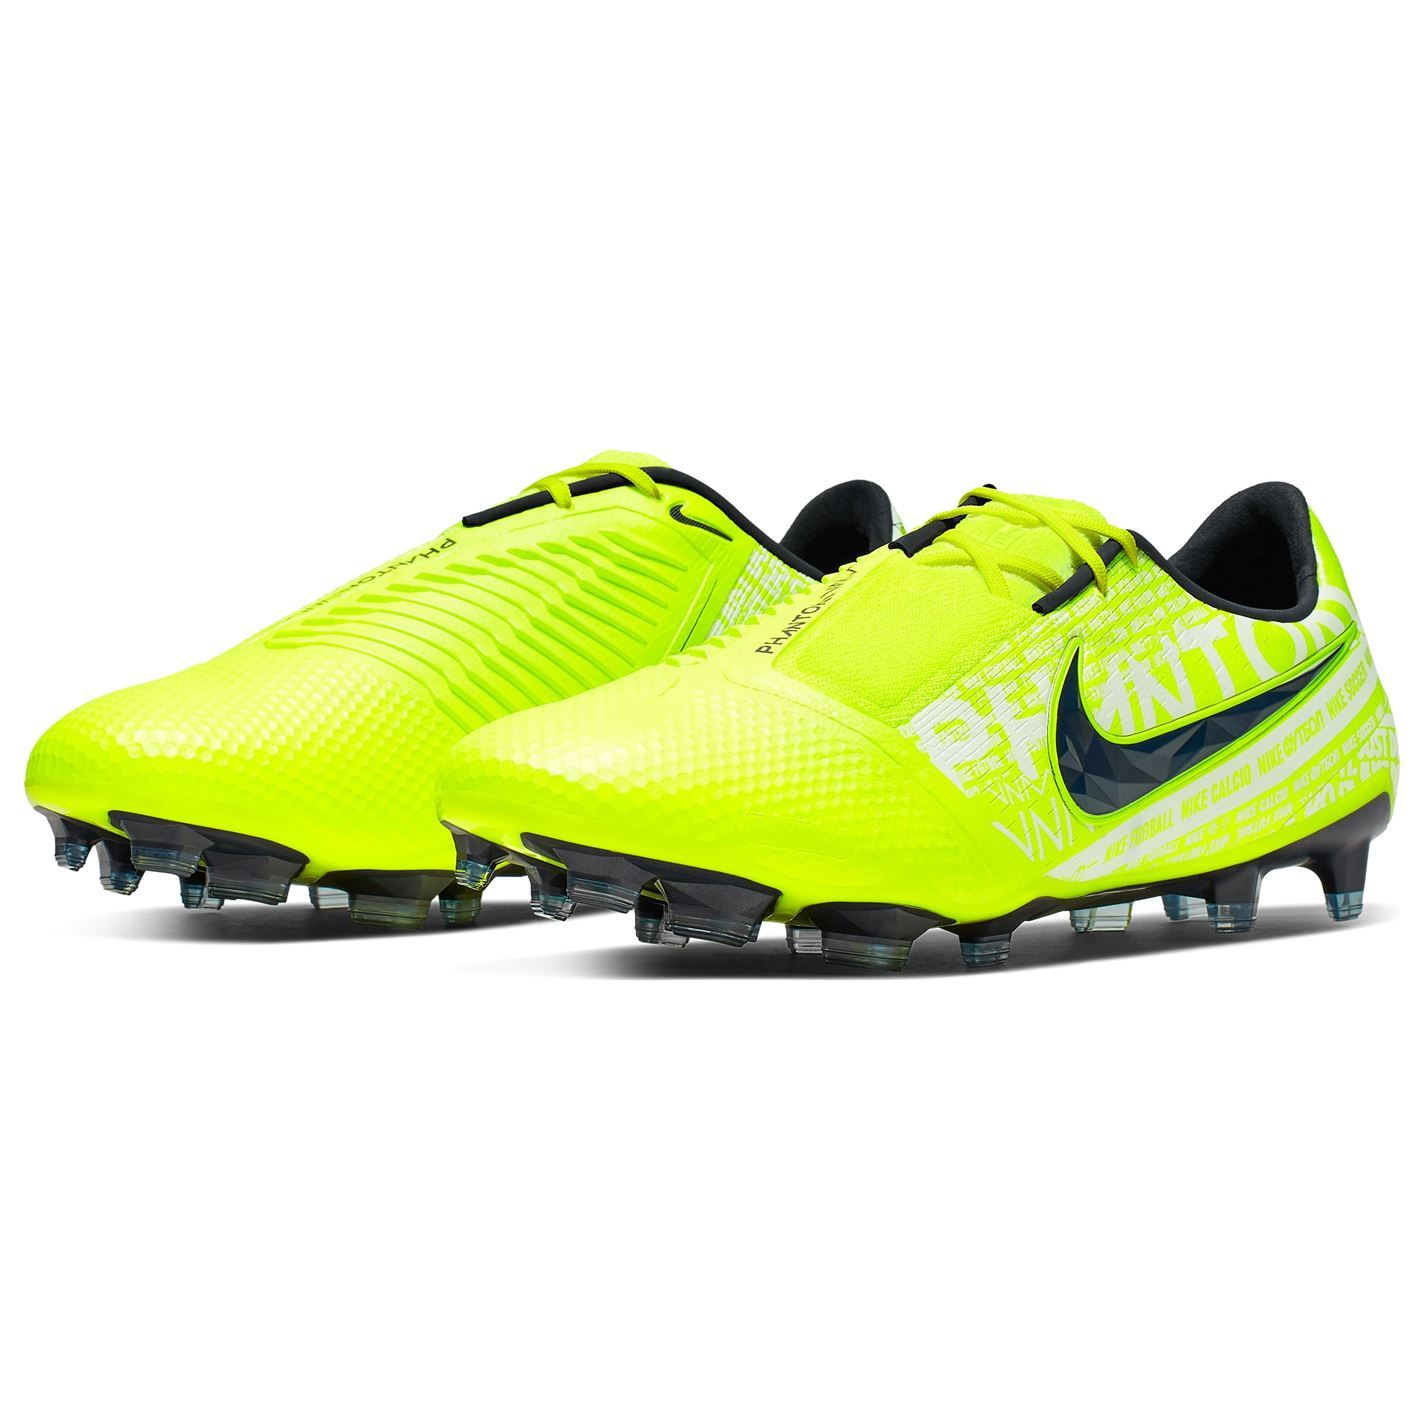 Nike-Phantom-Venom-Elite-Homme-FG-Firm-Ground-Chaussures-De-Football-Chaussures-de-foot-crampons miniature 21